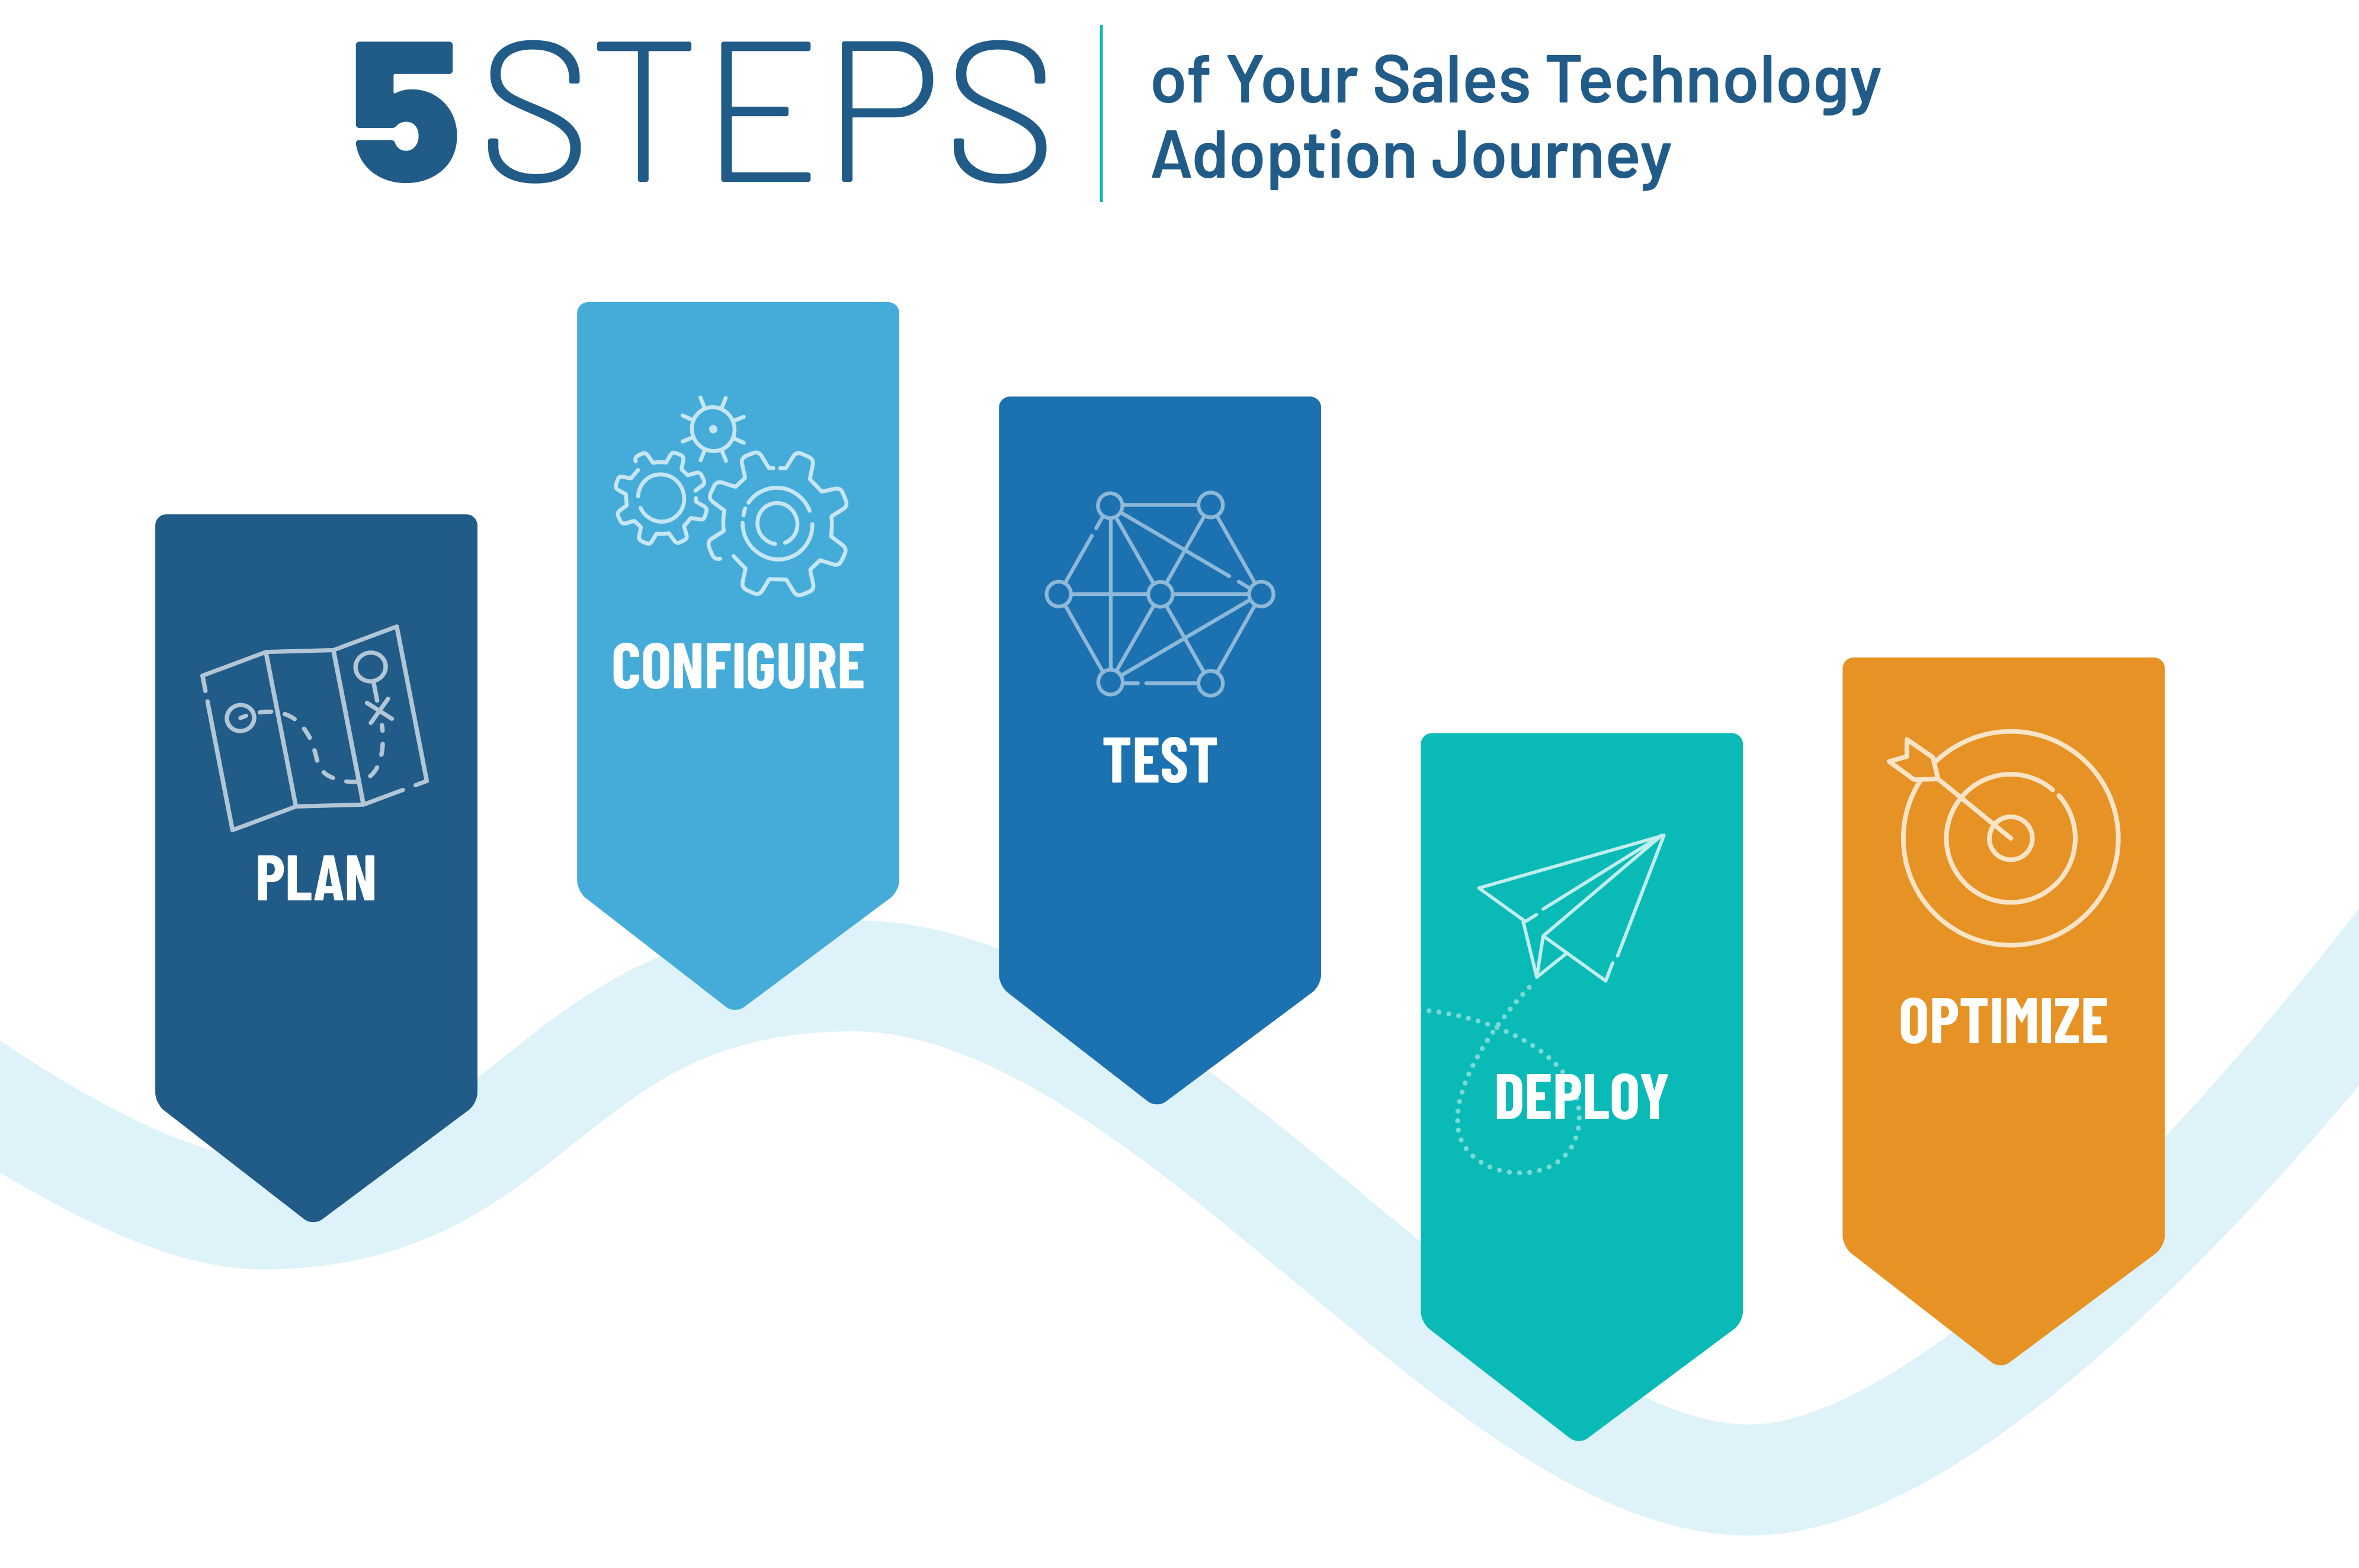 5 Steps of Your Sales Tech Adoption Journey